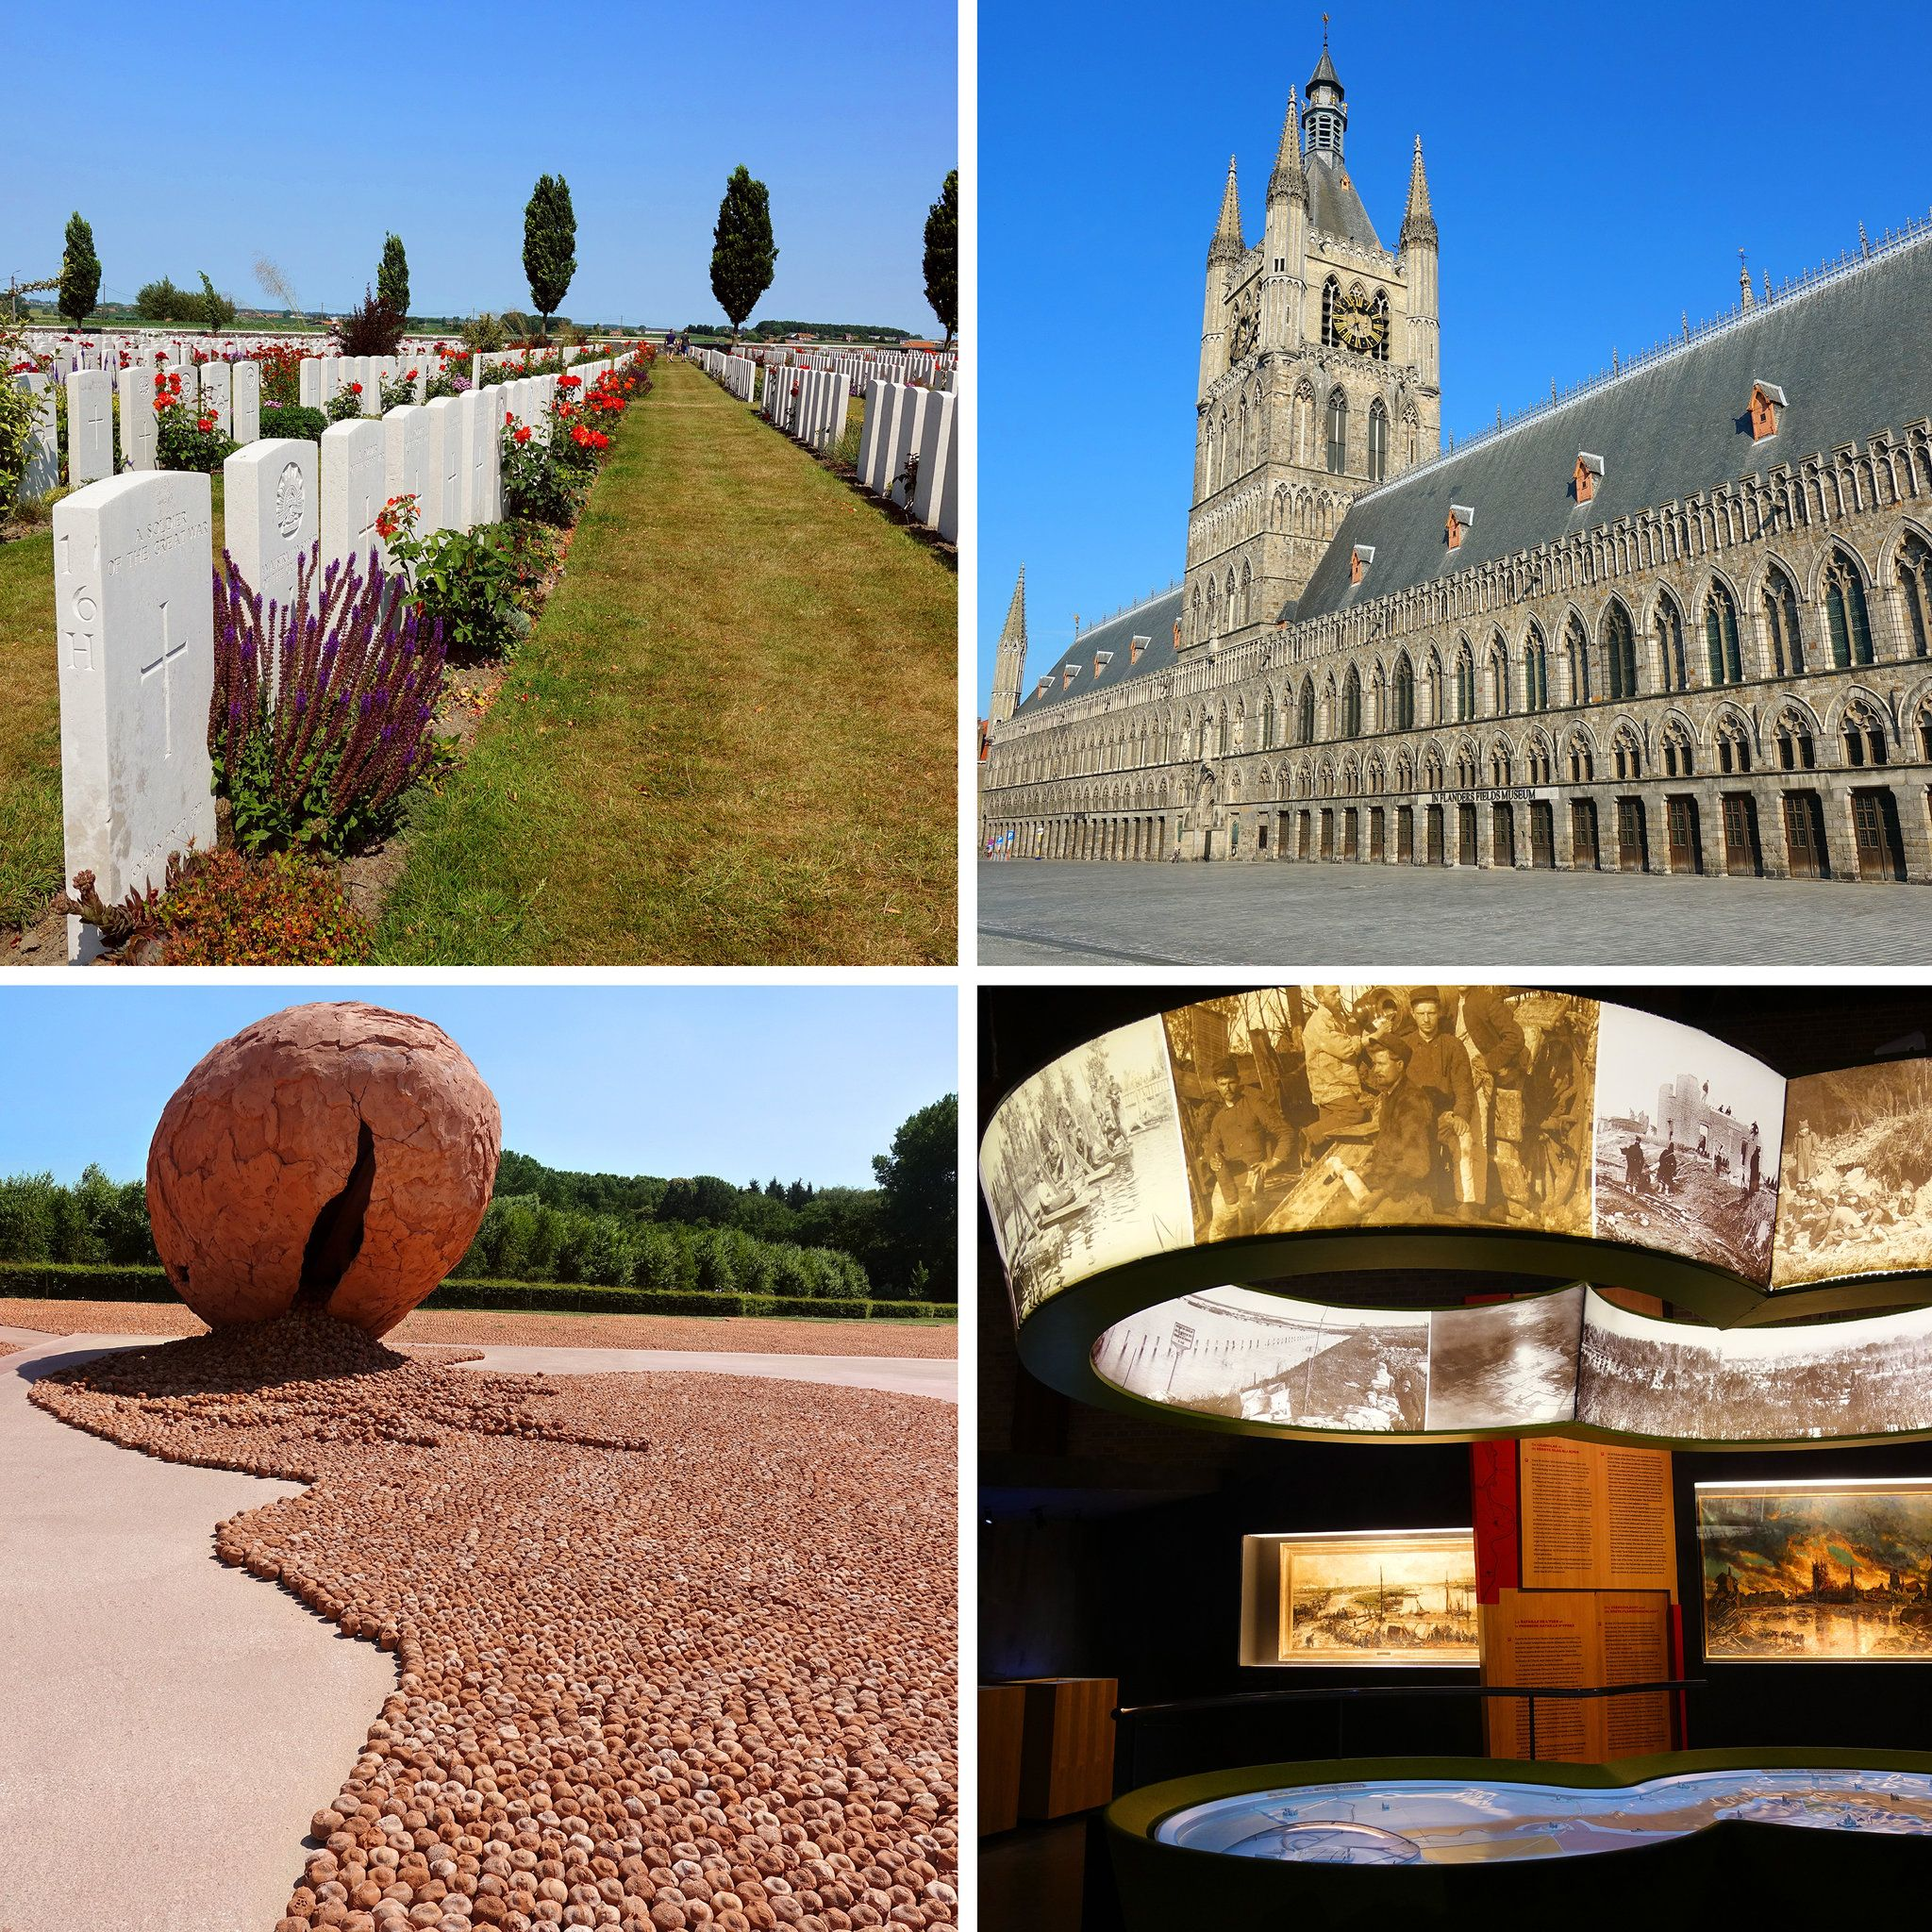 fe301abbd0 The 52 Places Traveler  A Pilgrimage to Ypres - The New York Times ...